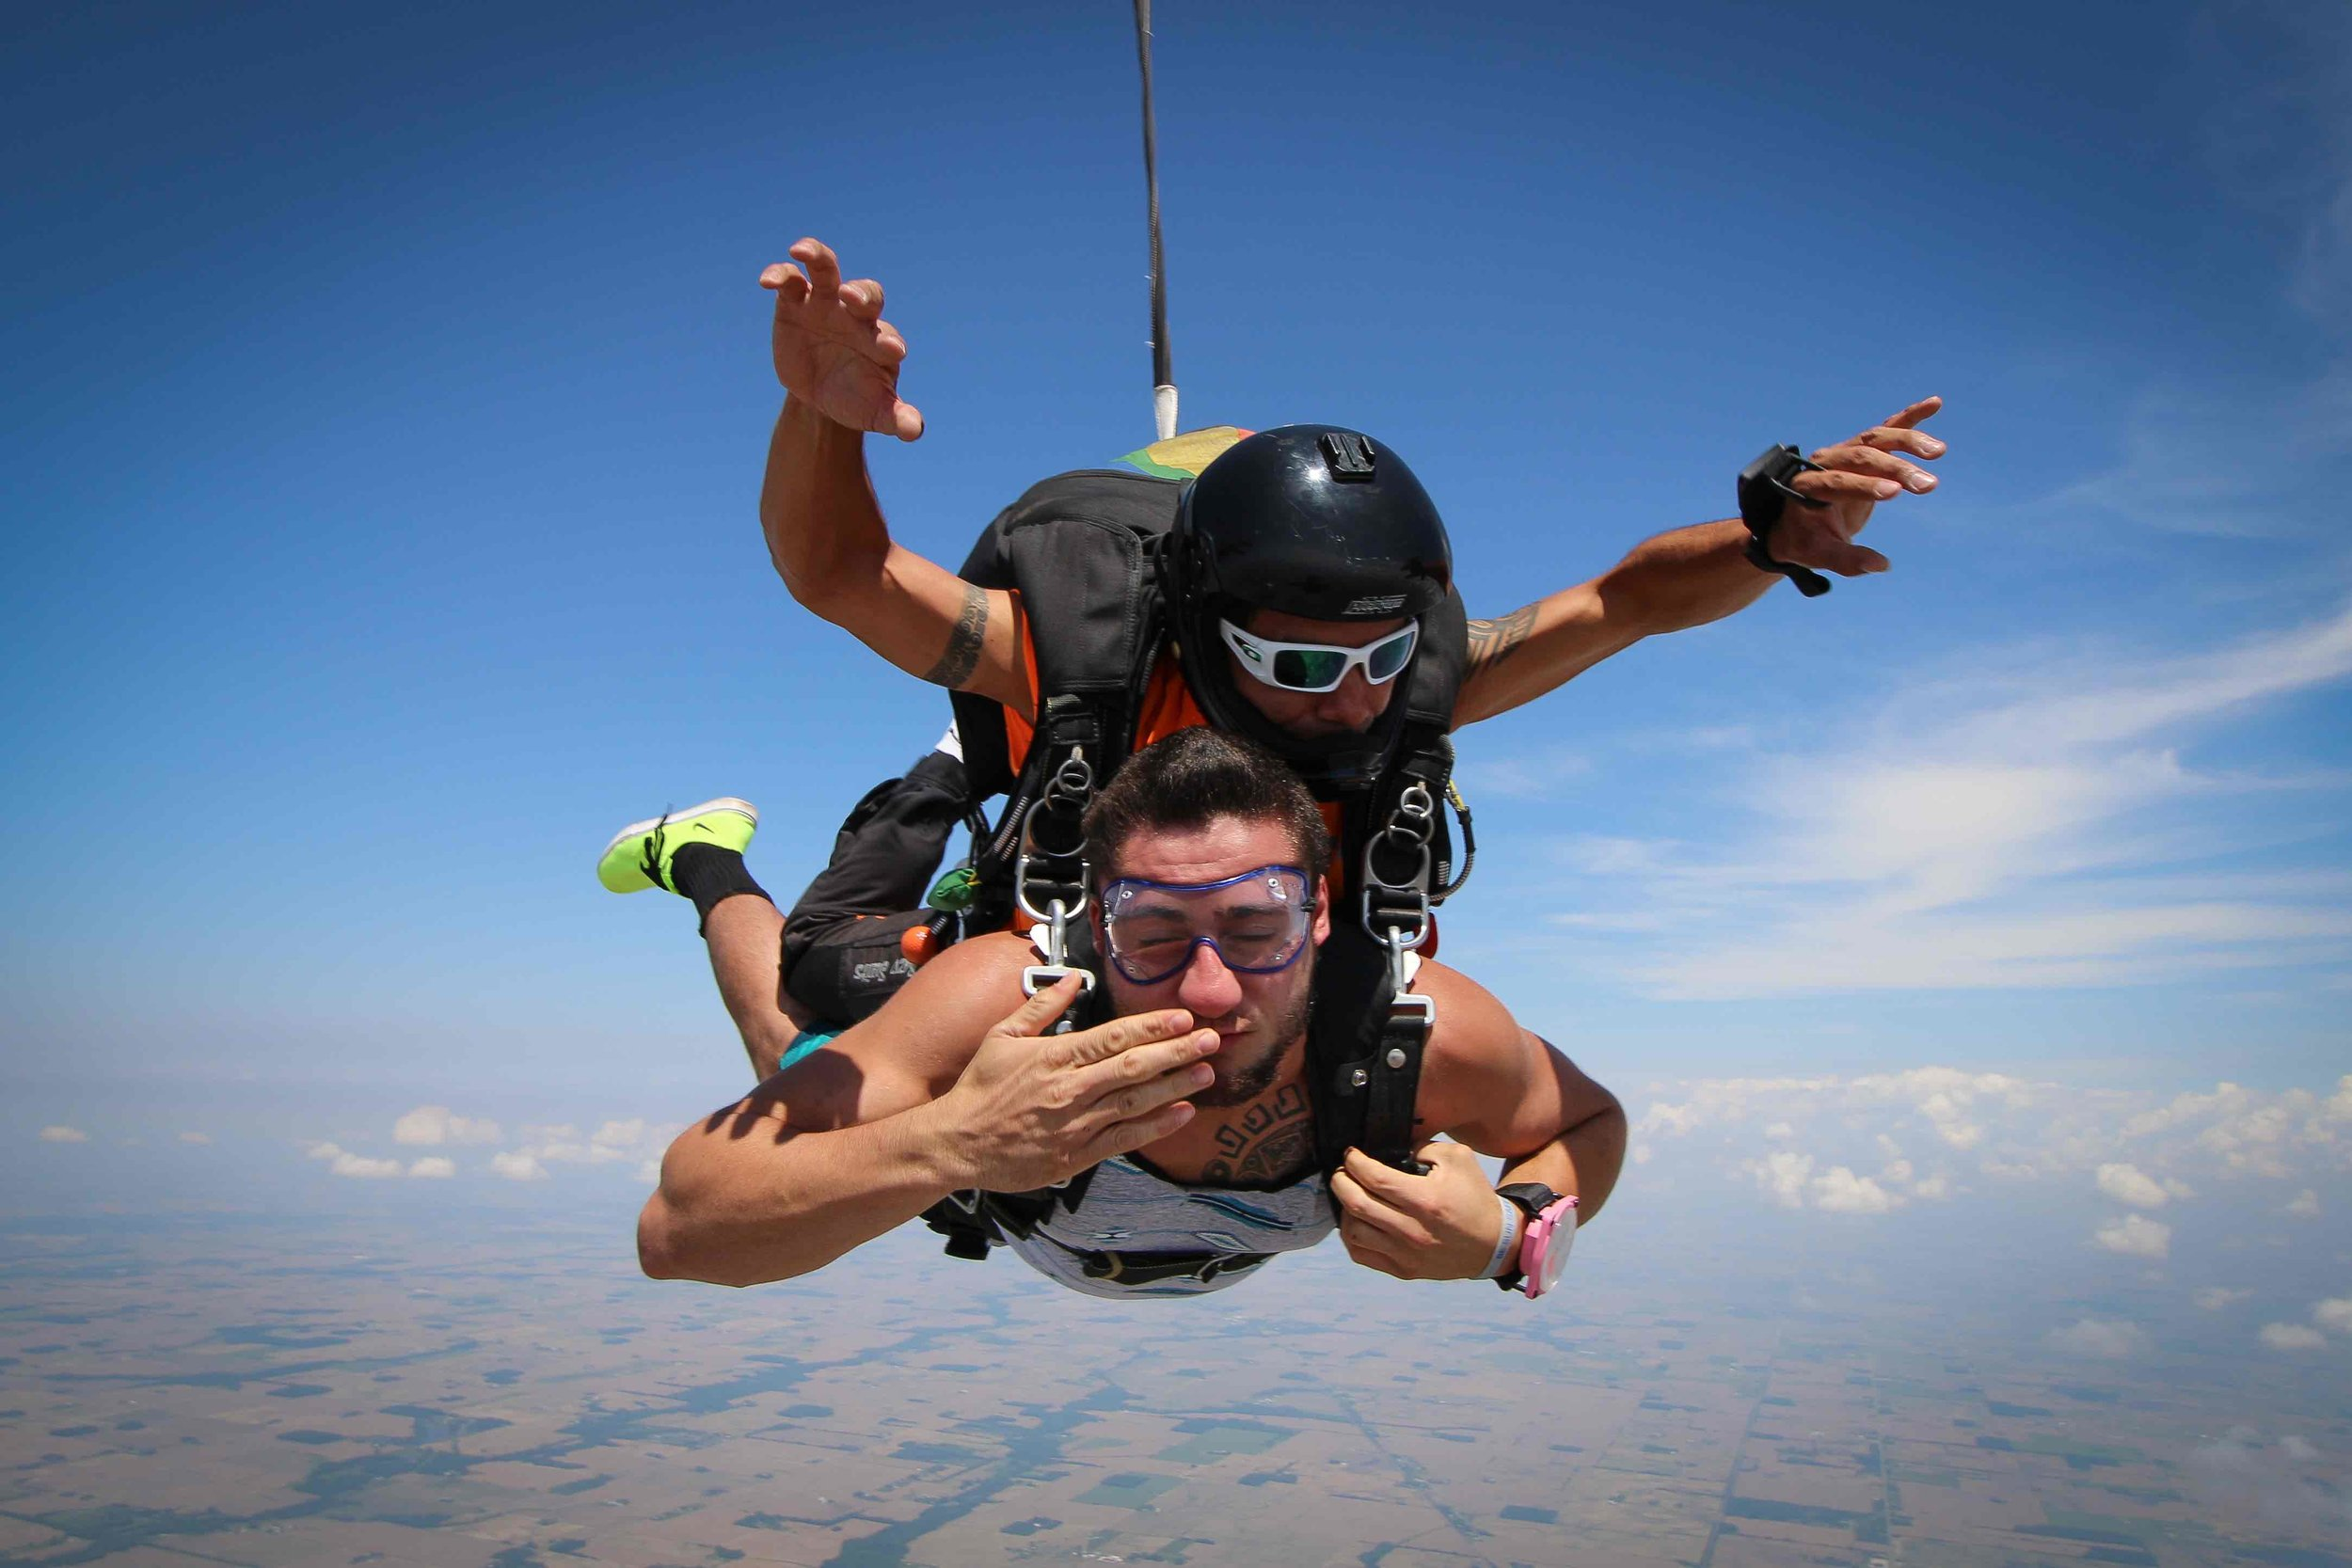 Blow your skydive videographer a kiss